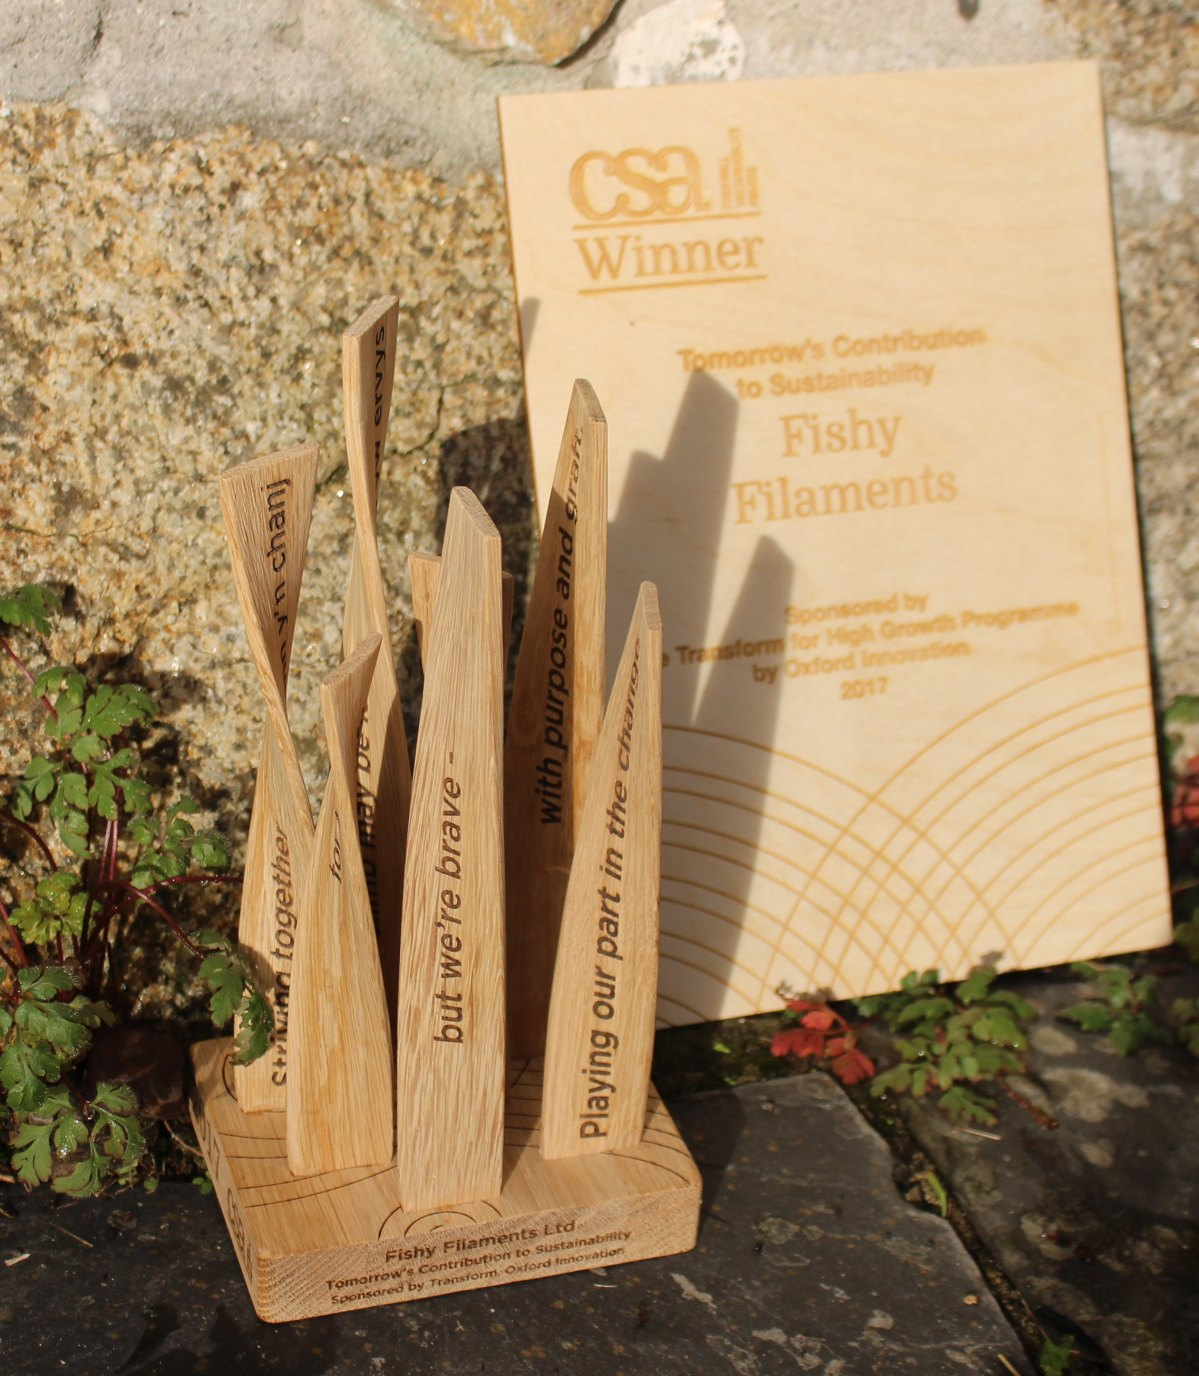 Cornwall Sustainability Awards 2017 – Winners of Best Innovator